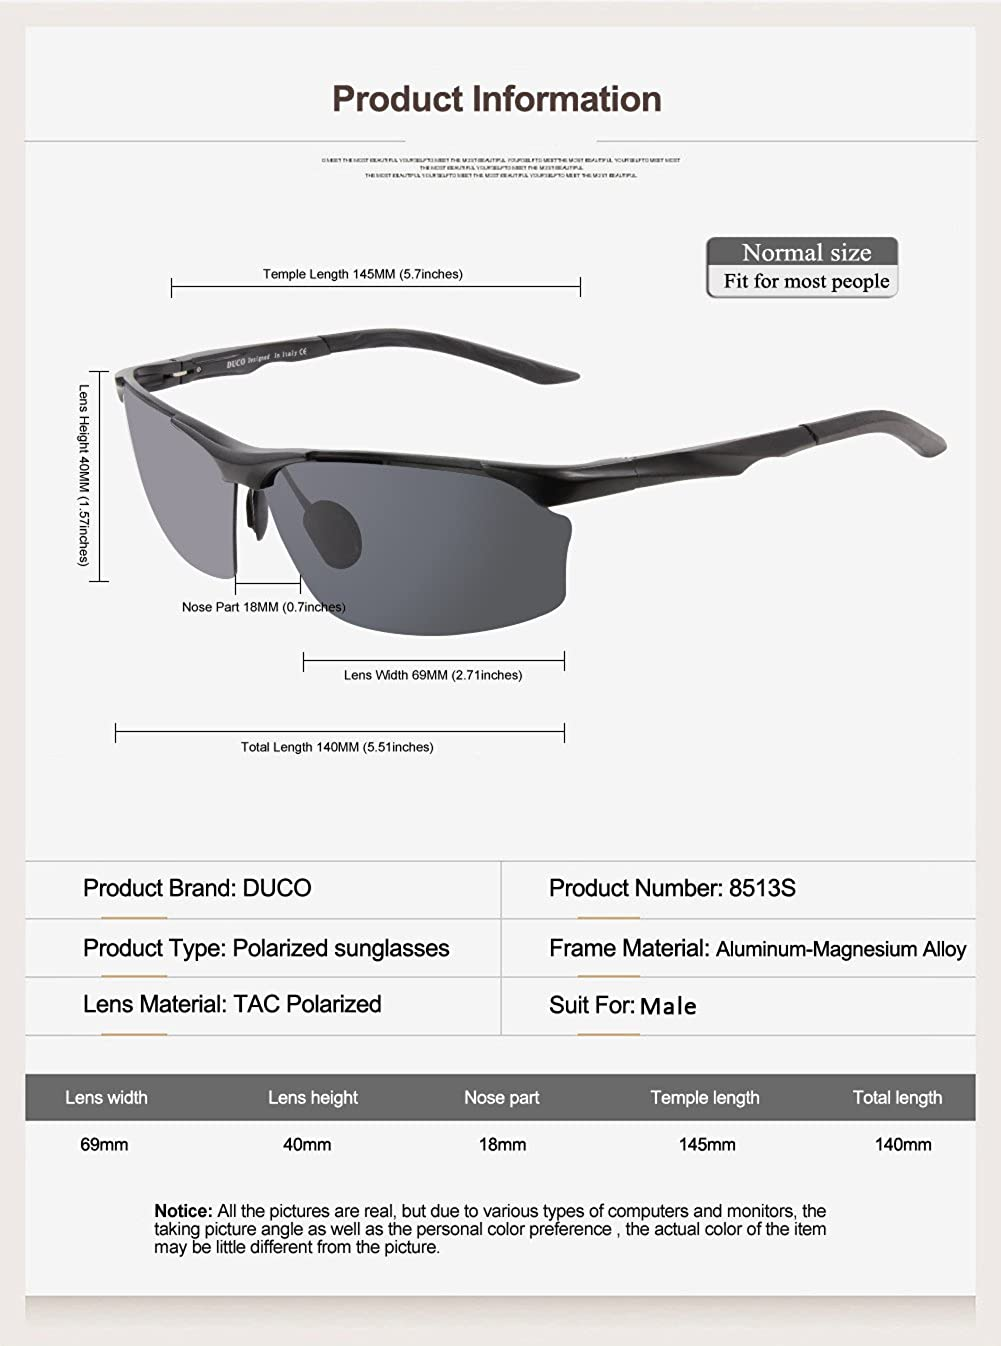 Duco Polarized Unbreakable Sunglasses 100/% UV400 Protection Eyewear Sunglasses for Men and Women Shades 8513S